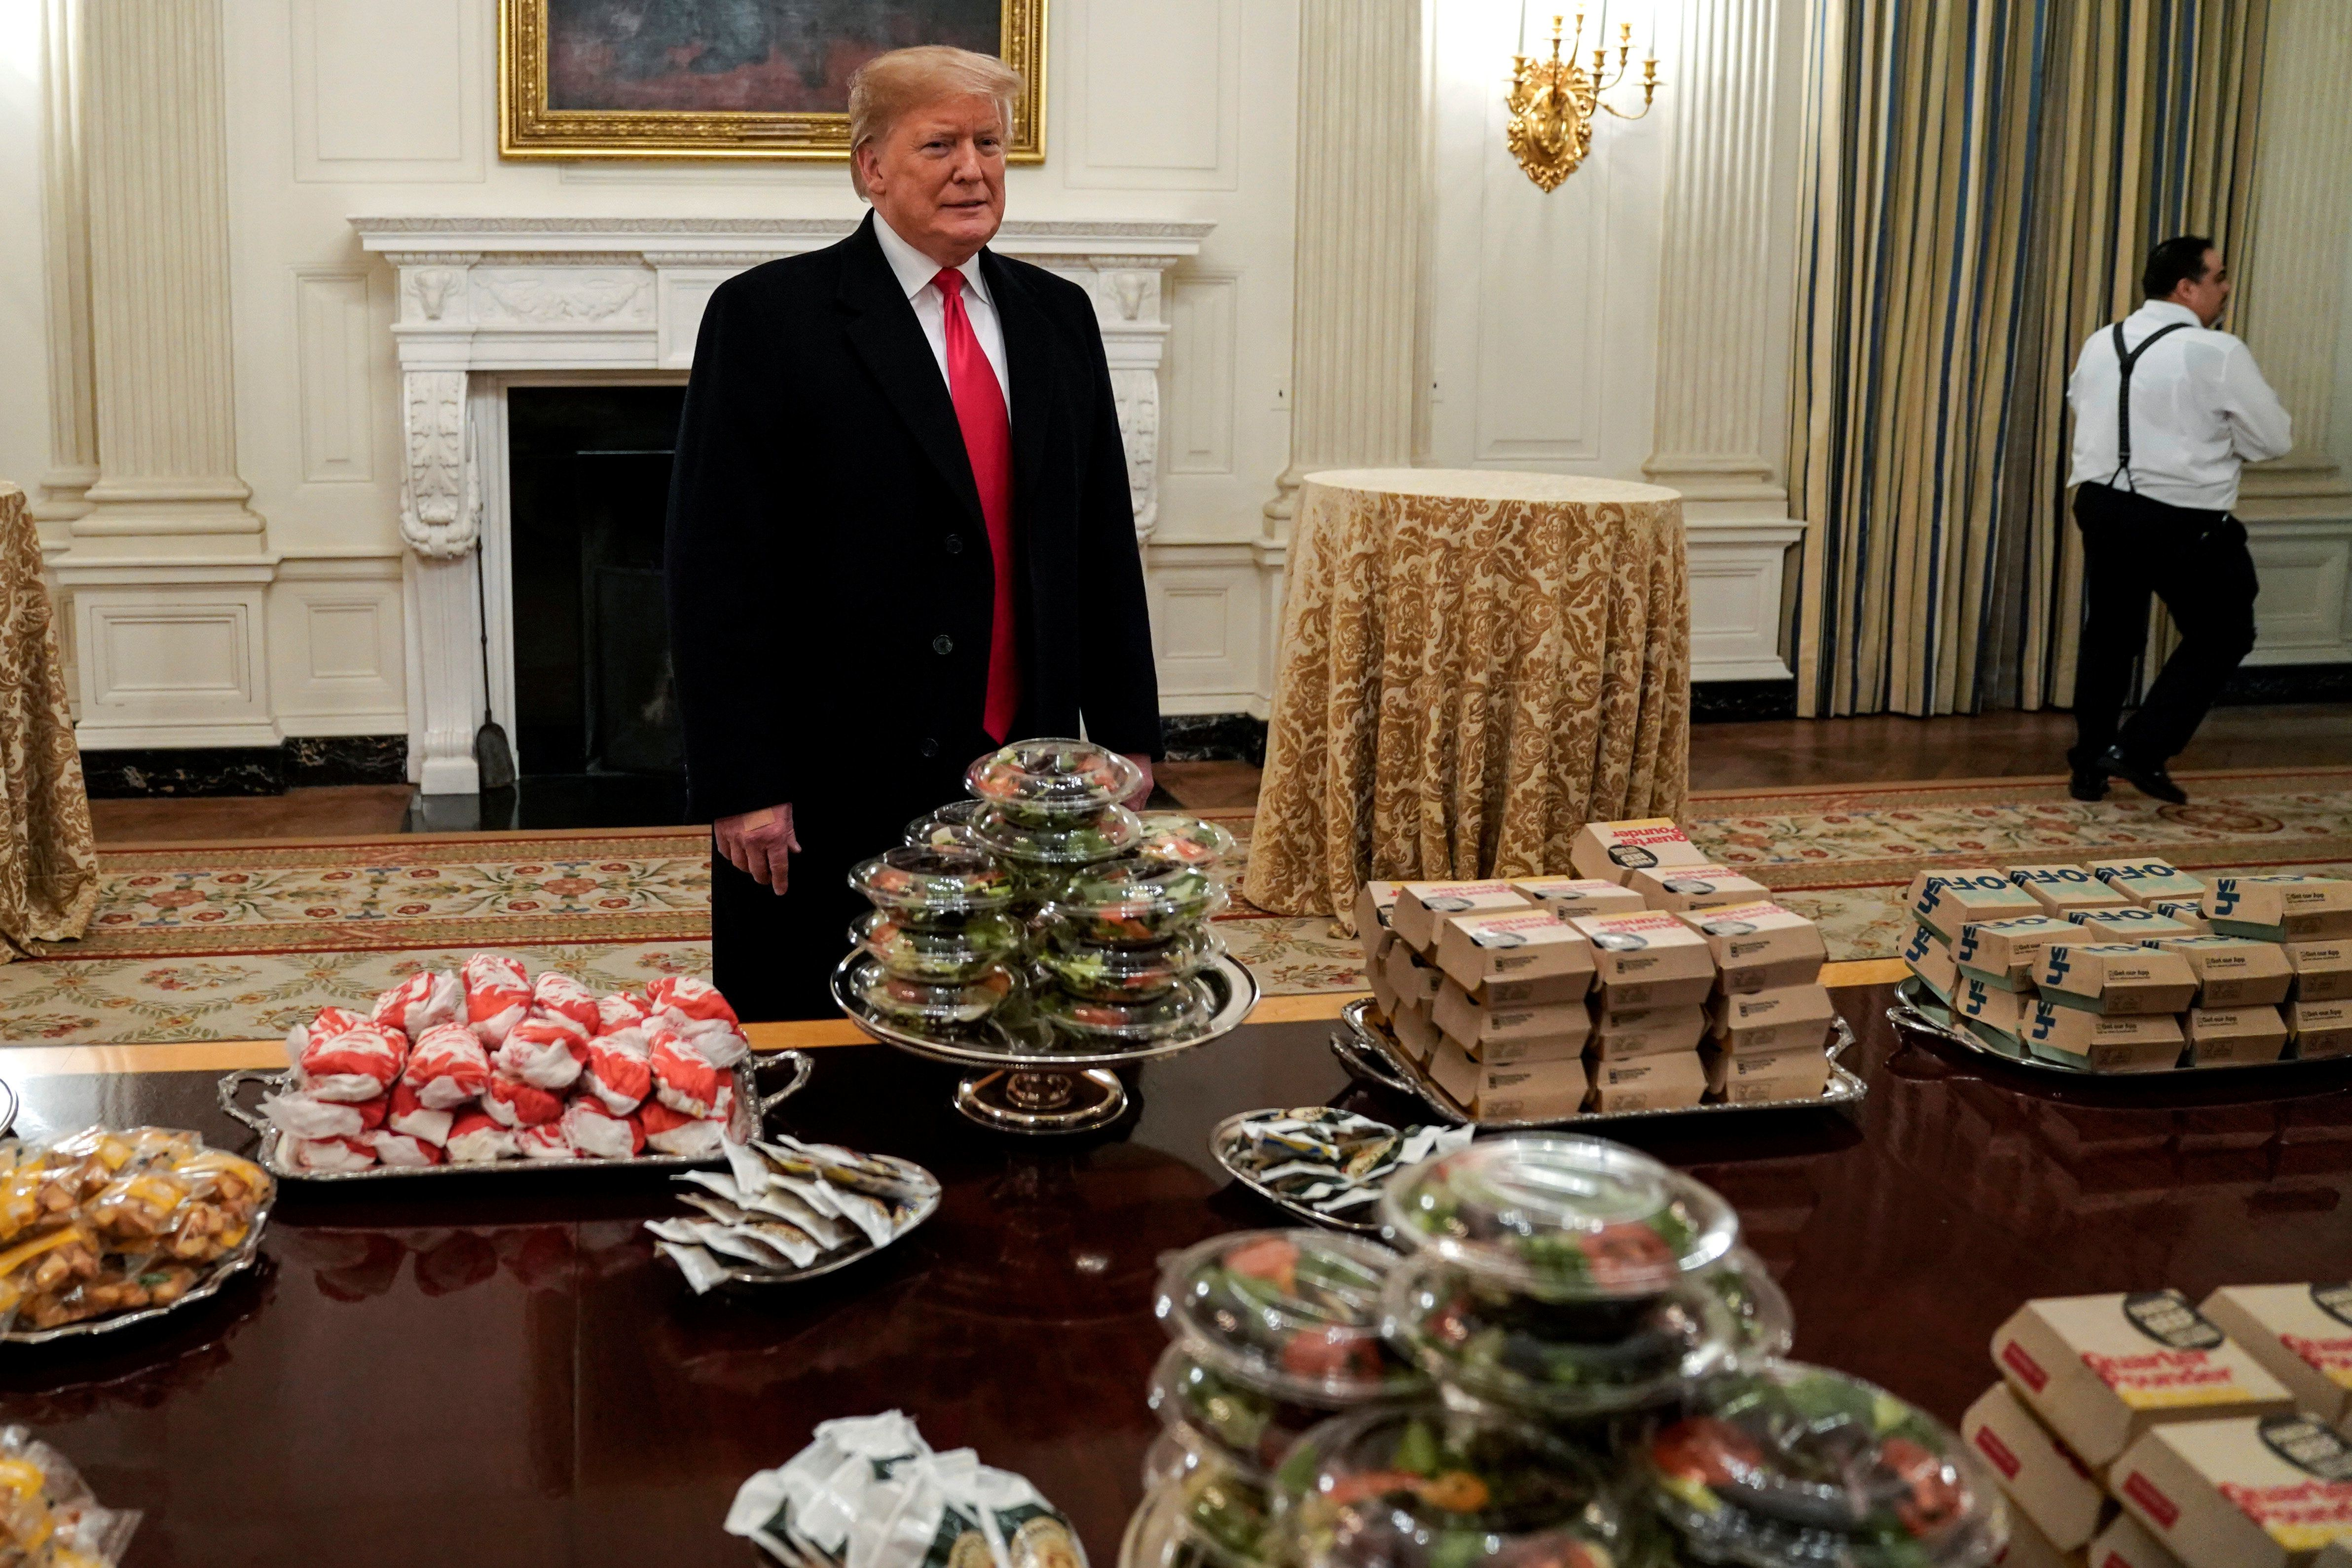 Trump Orders Hundreds Of Burgers For White House Guests As Shutdown